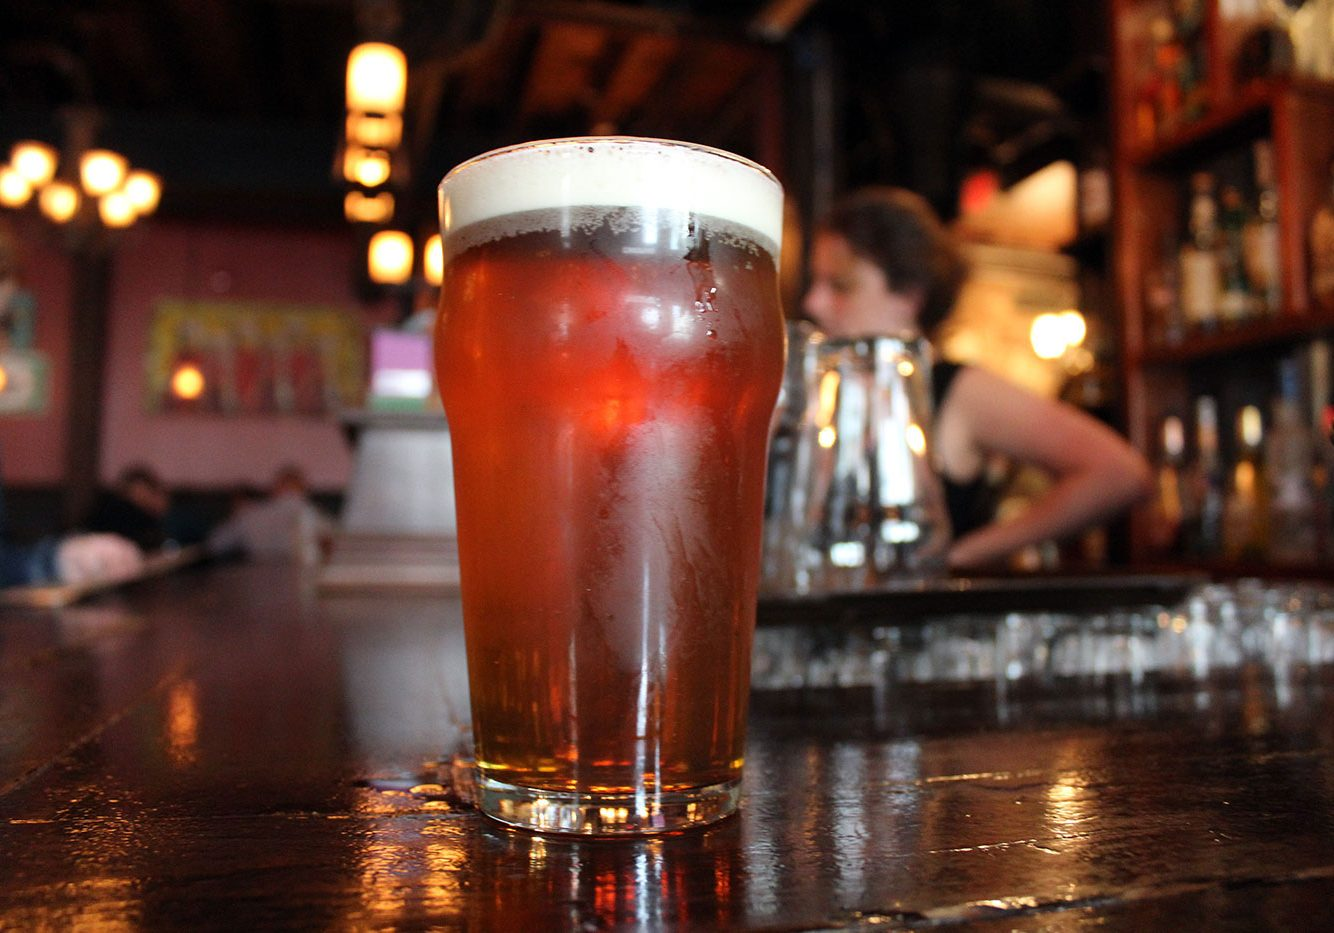 YellowBelly Brewery craft beer pint